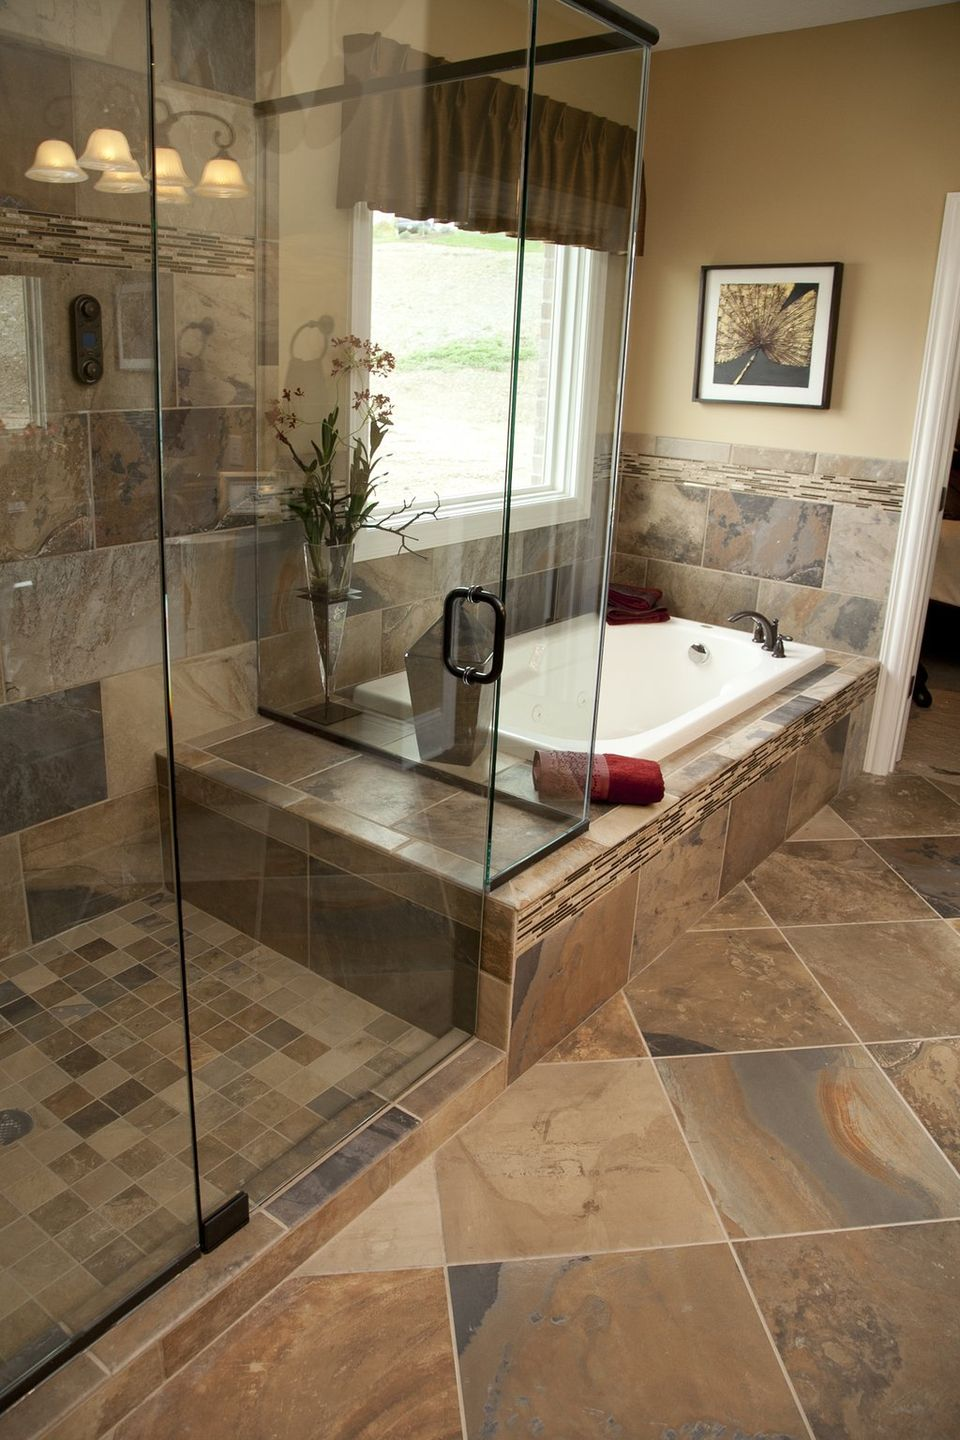 33 stunning pictures and ideas of natural stone bathroom for Pictures of bathroom tile designs